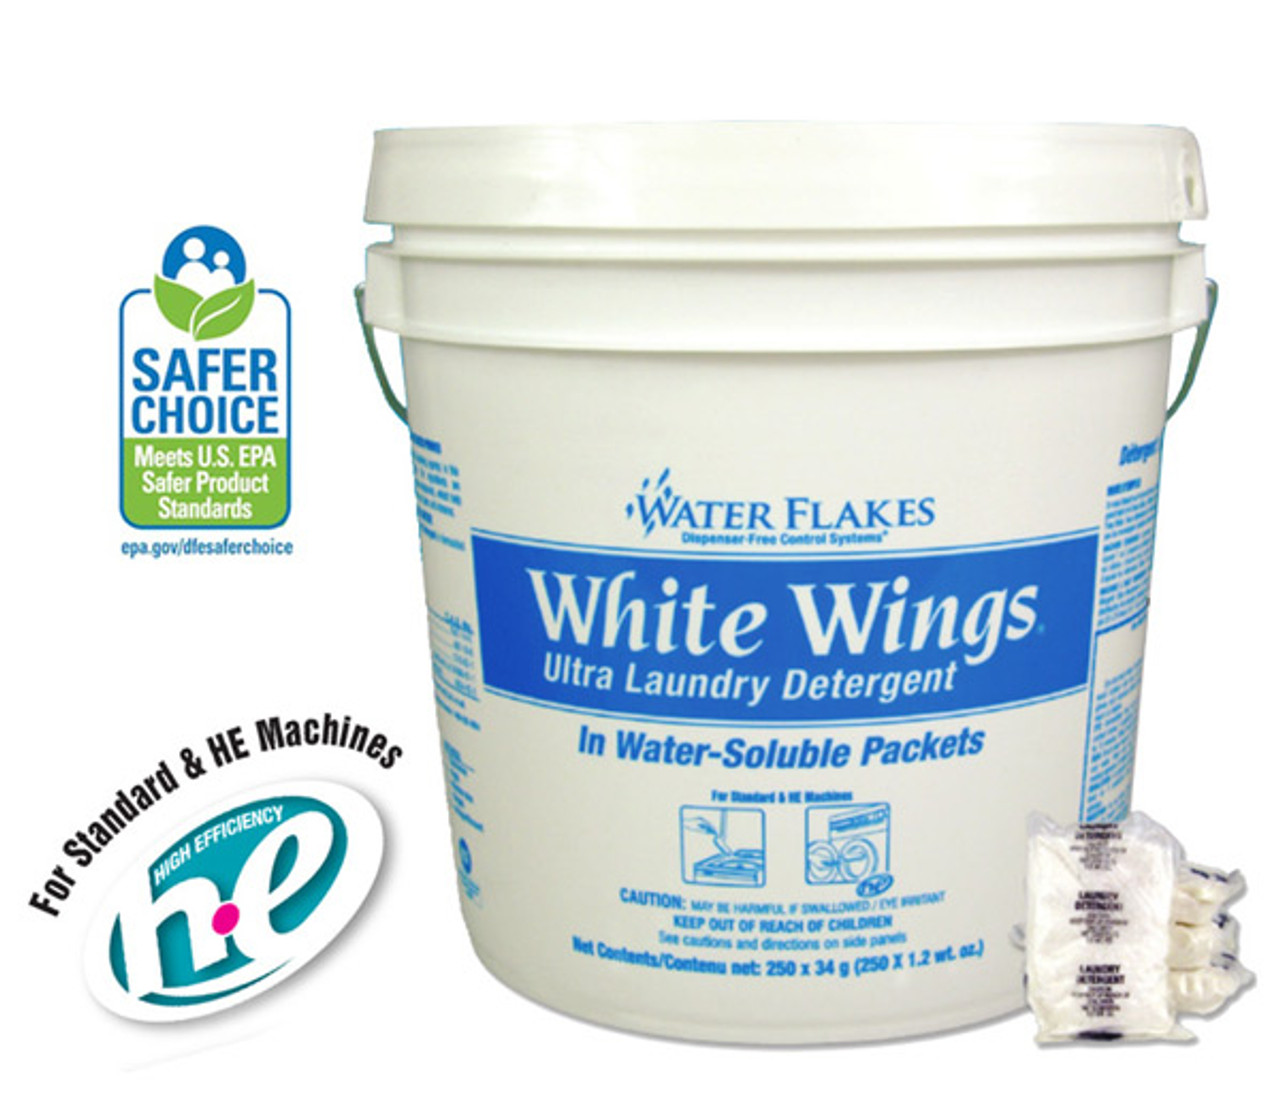 White Wings Ultra Laundry Detergent Cleans and Brightens with No Phosphorous or Lye!